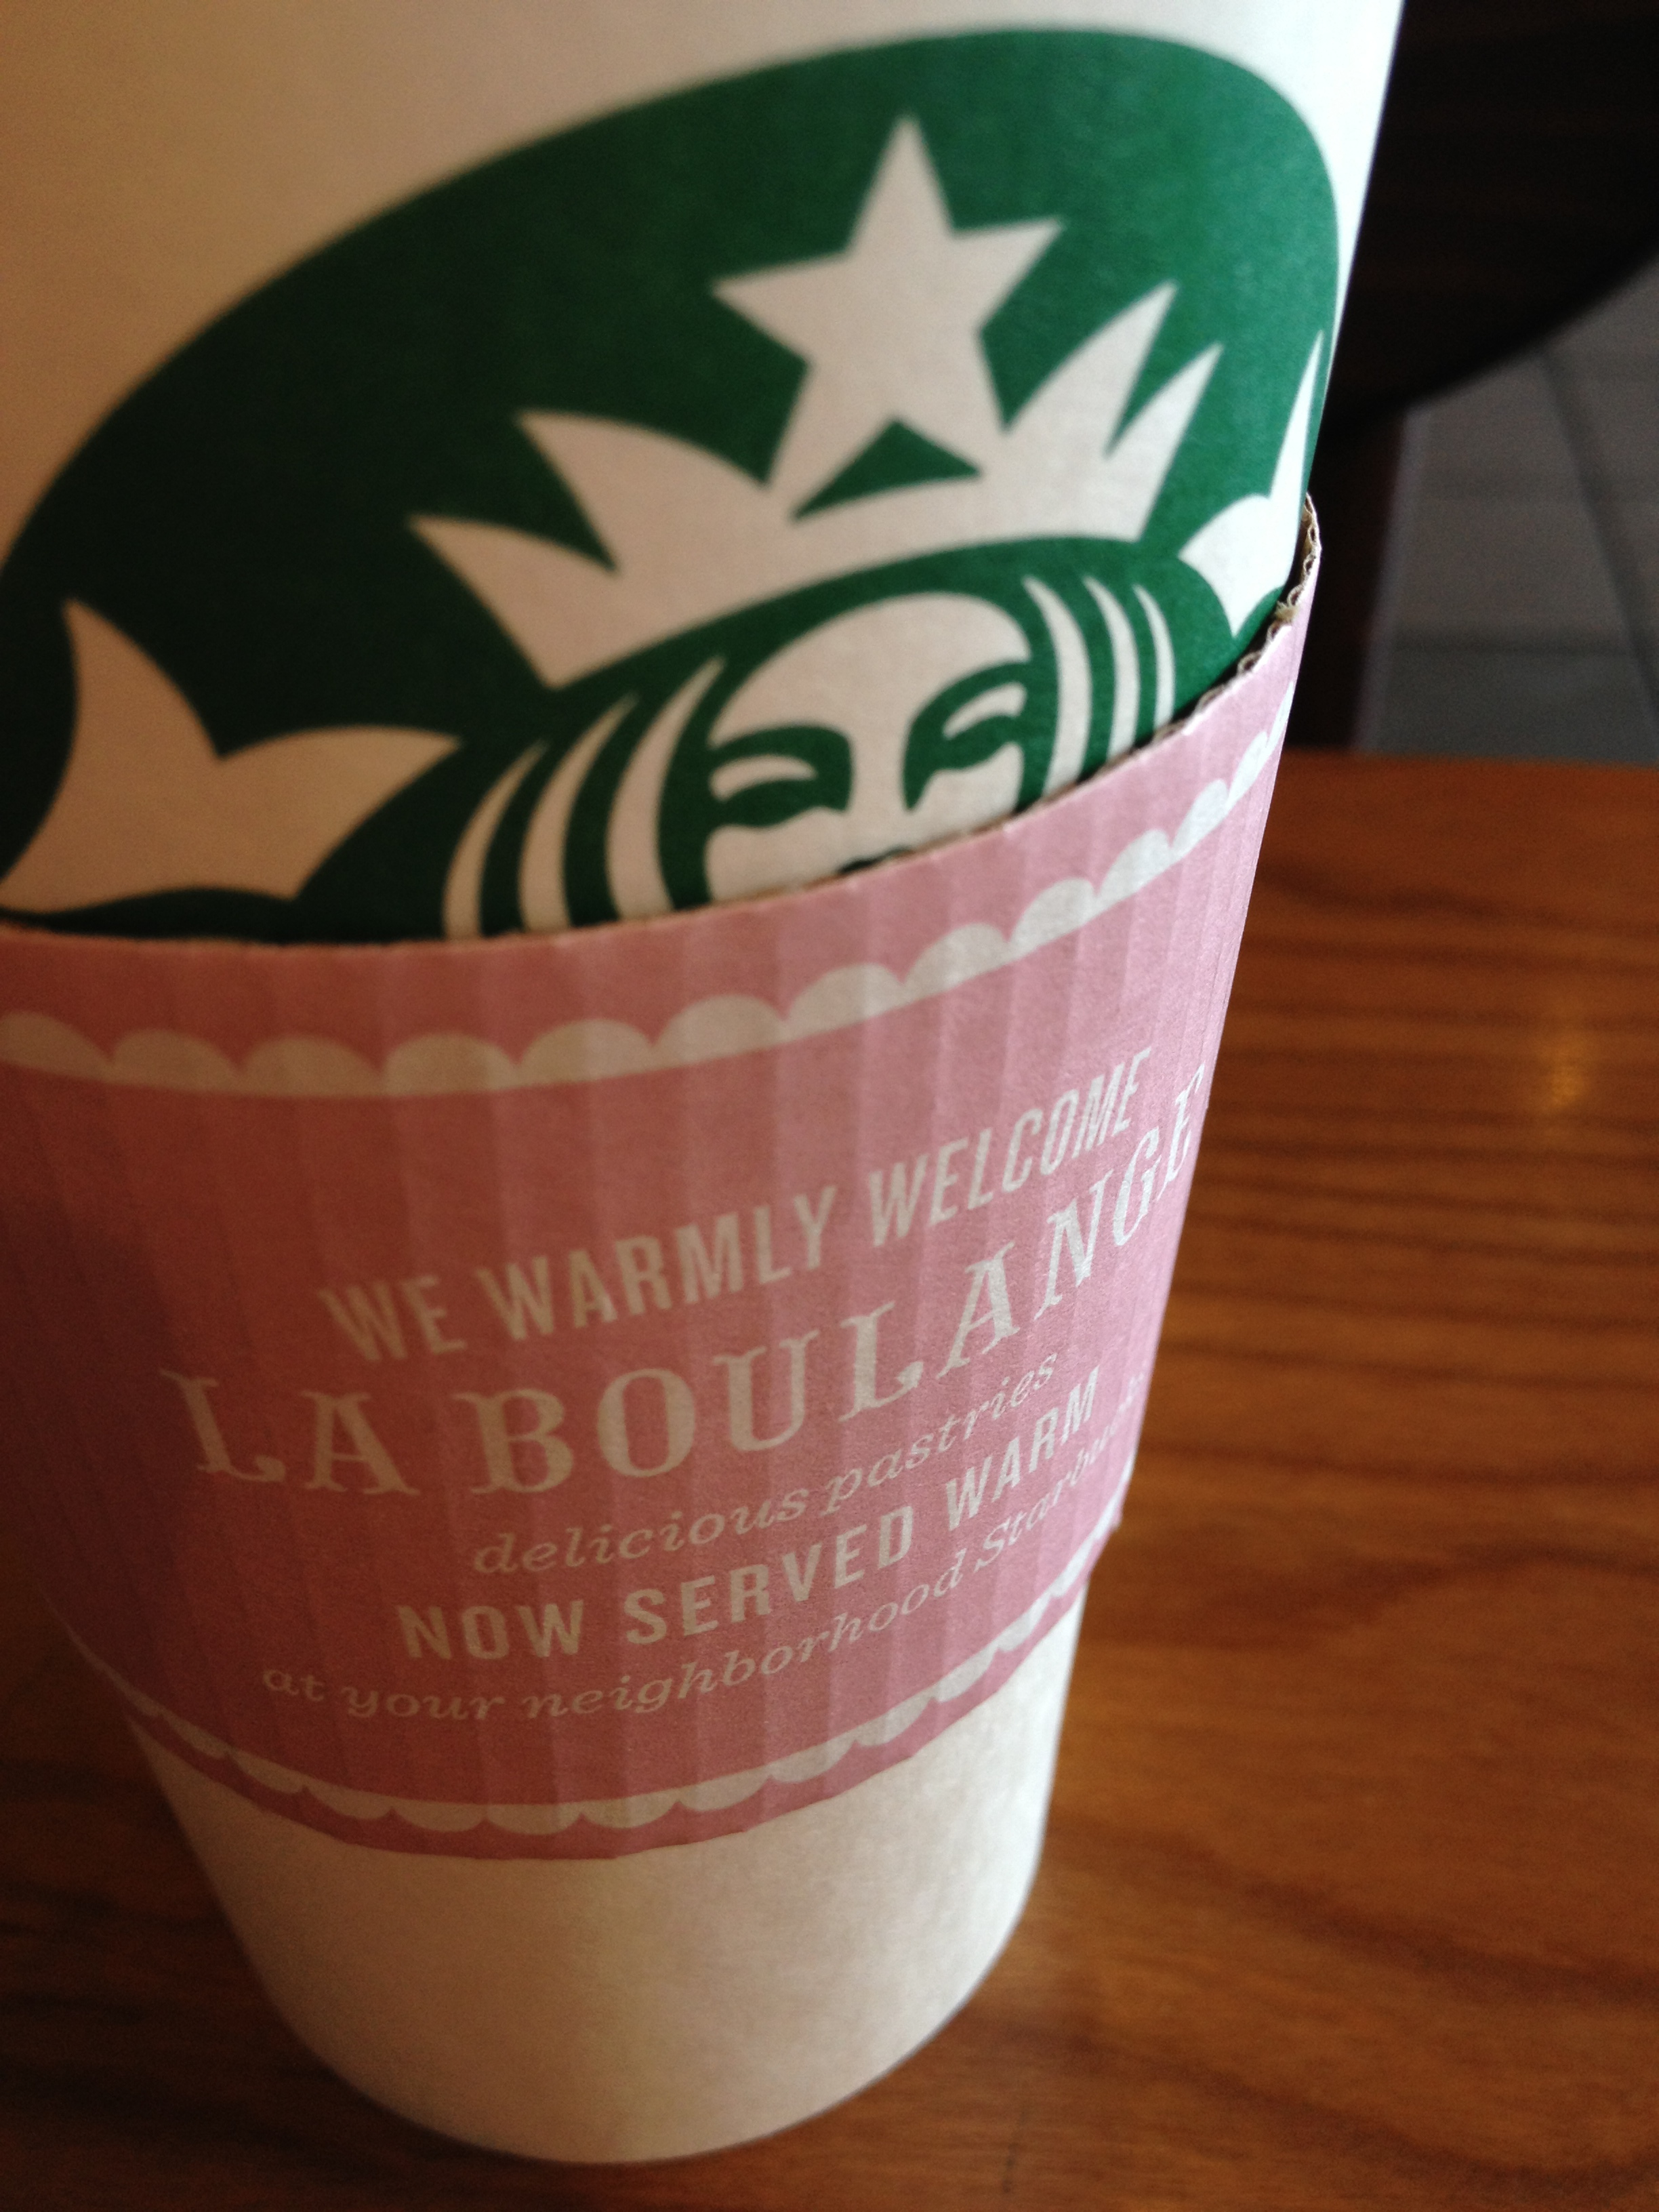 New cup sleeve at Starbucks welcoming La Boulange. Design clash.